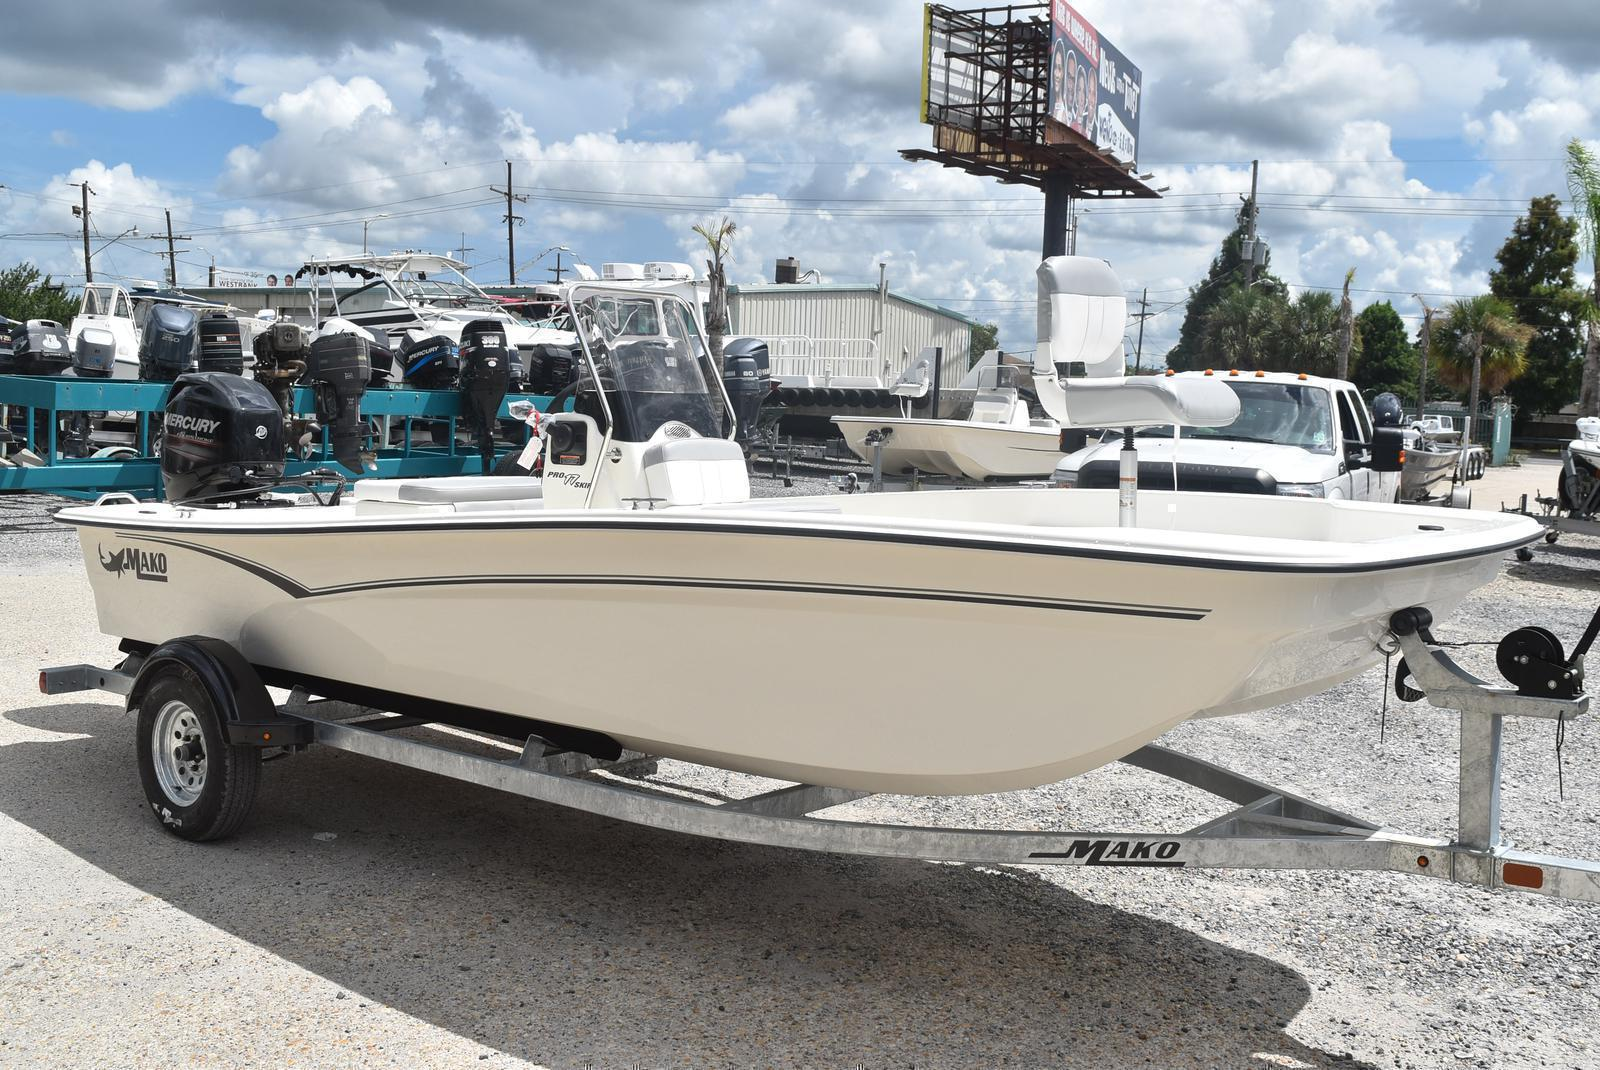 2020 Mako boat for sale, model of the boat is Pro Skiff 17, 75 ELPT & Image # 697 of 702